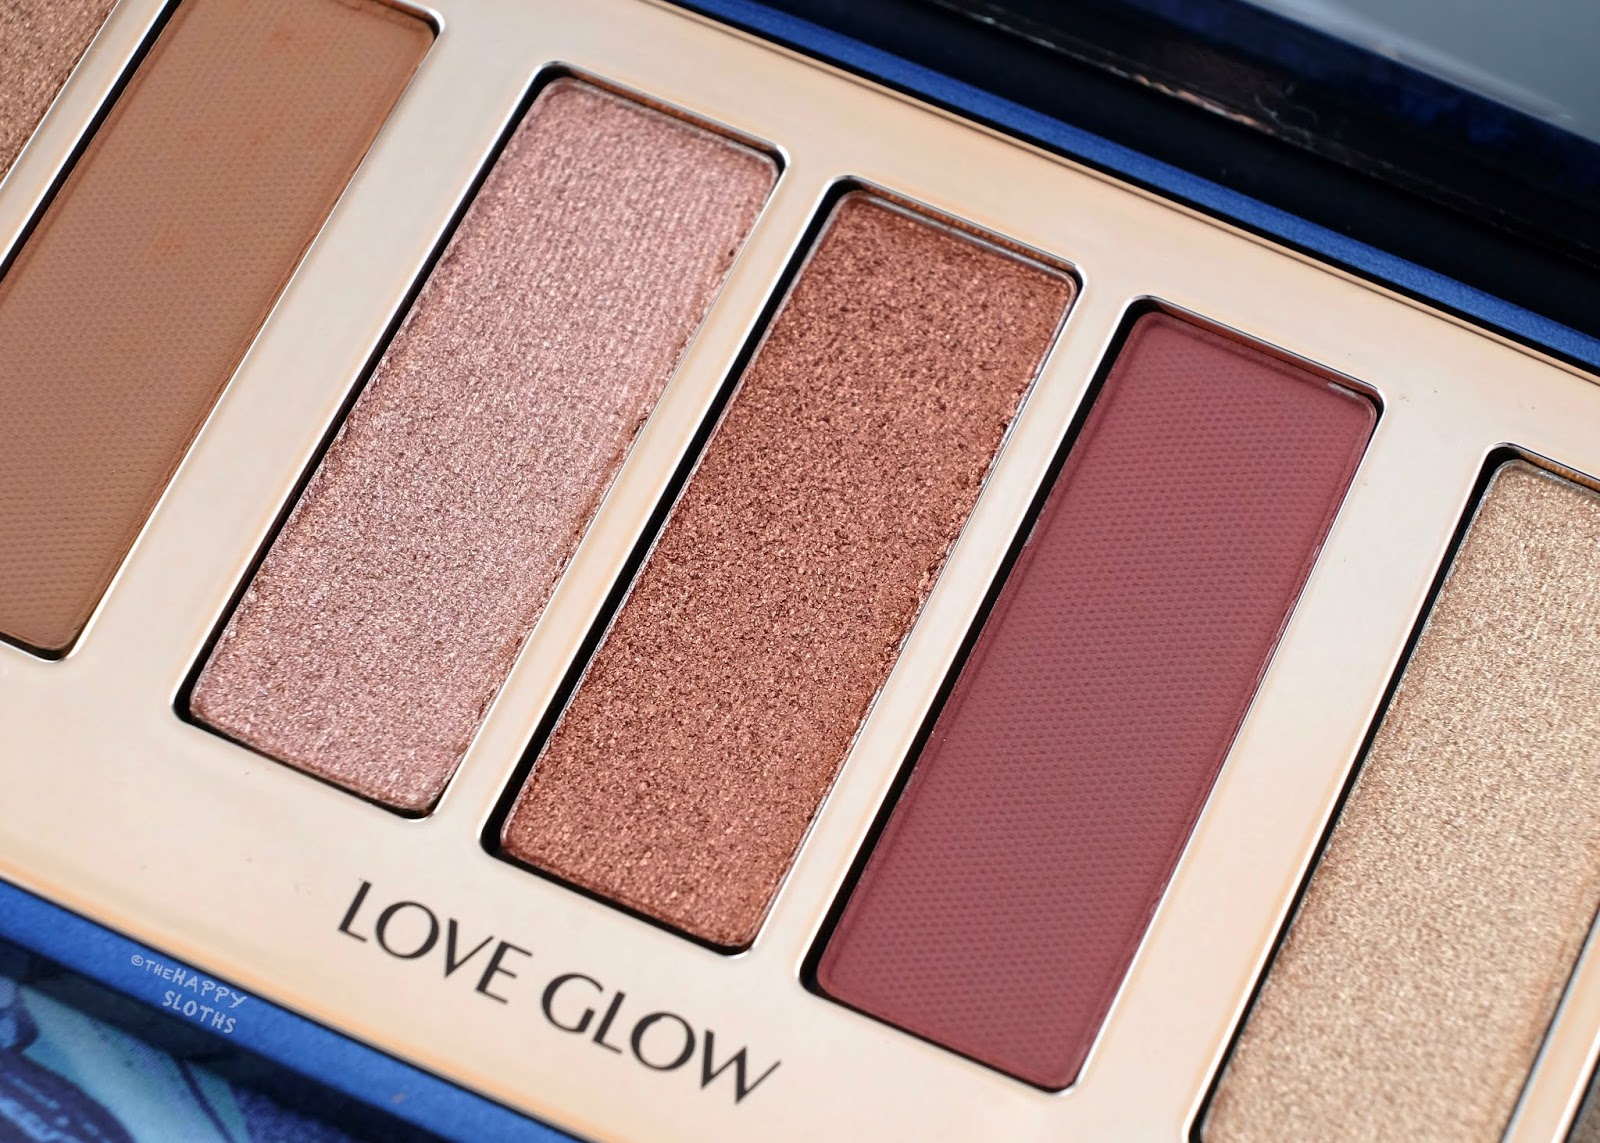 Charlotte Tilbury | Starry Eyes To Hypnotise Eyeshadow Palette | Love Glow: Review and Swatches